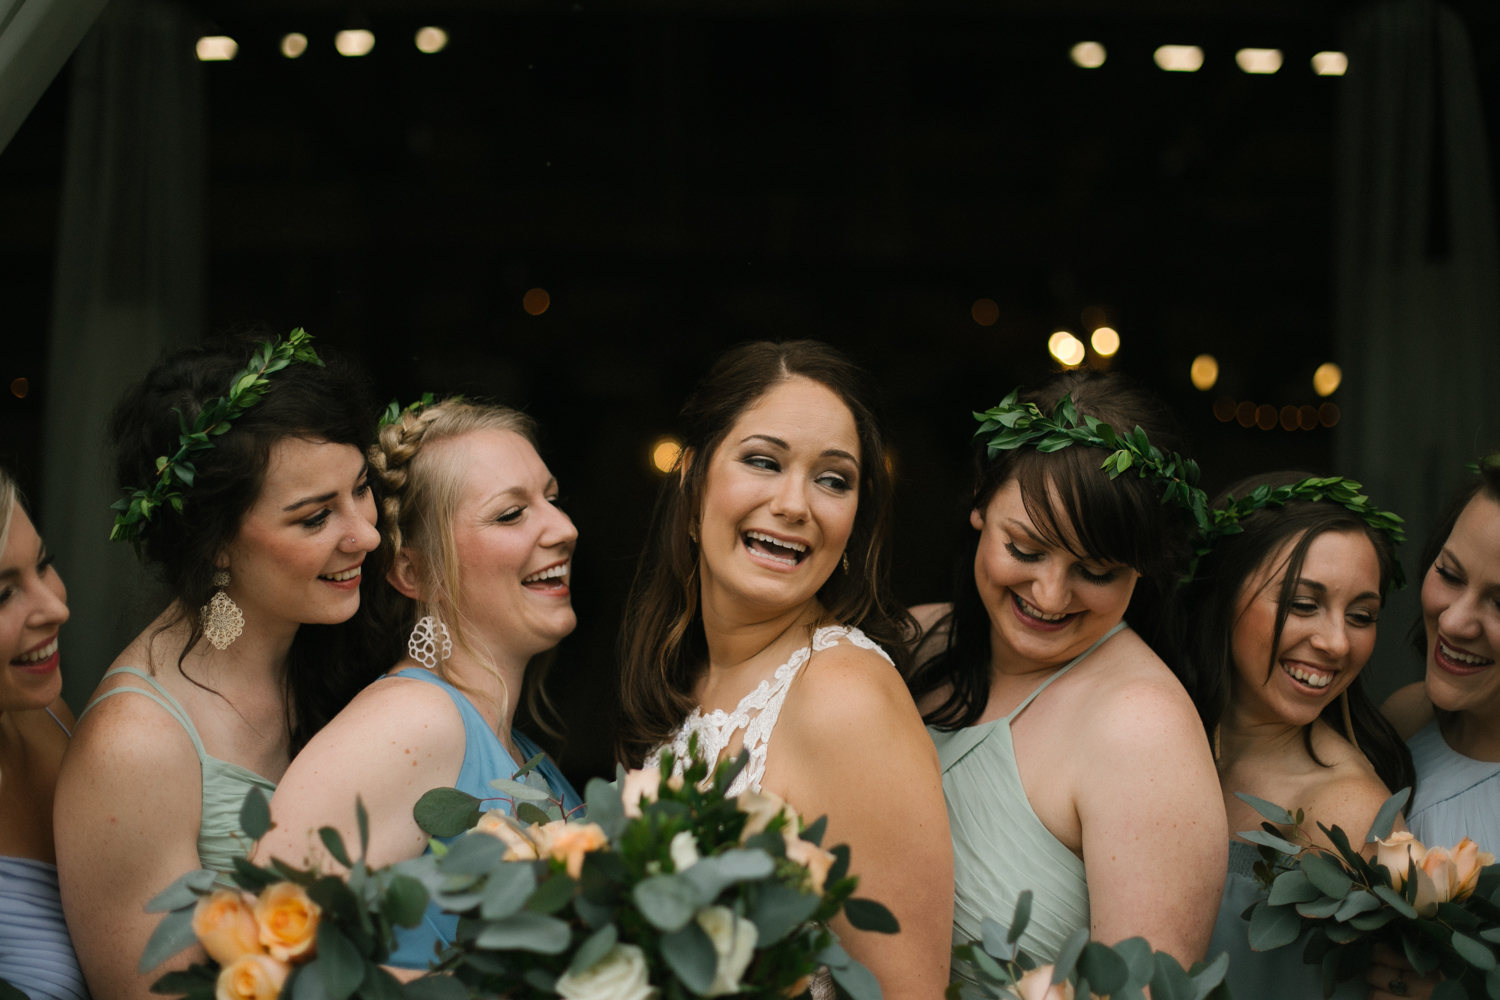 2018.05.05_SarahDillon_Wedding_Starks-0018.jpg